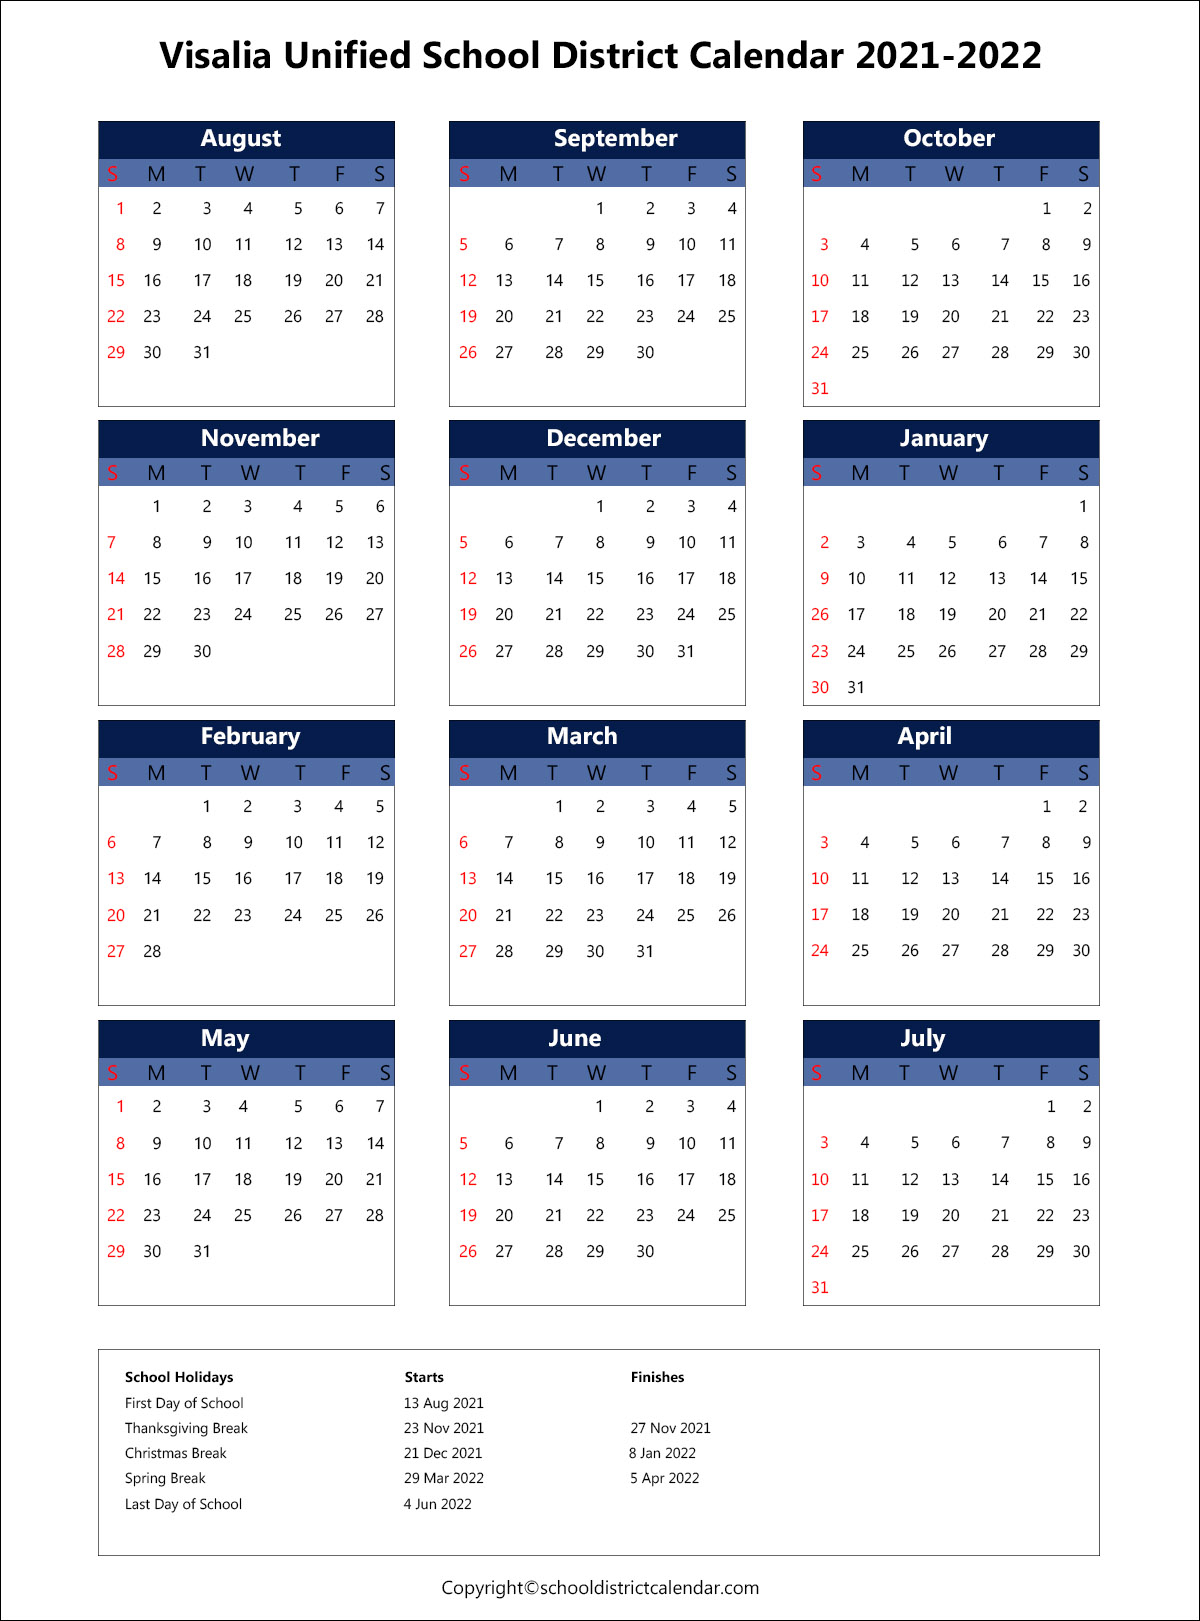 Visalia Unified School District Calendar 2021